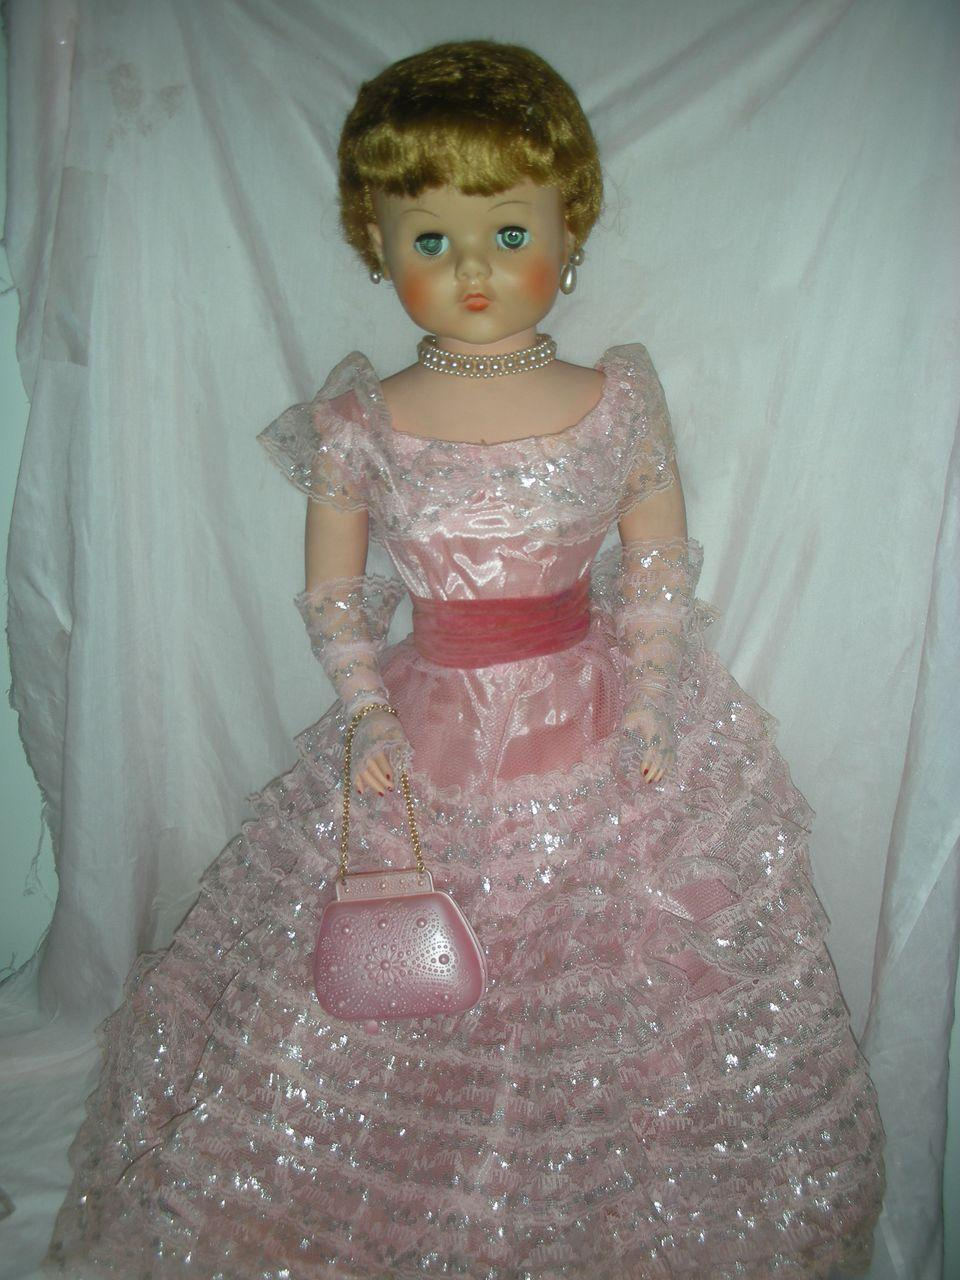 Vintage Deluxe Reading Sweet Rosemary Fashion Doll 30 Inch